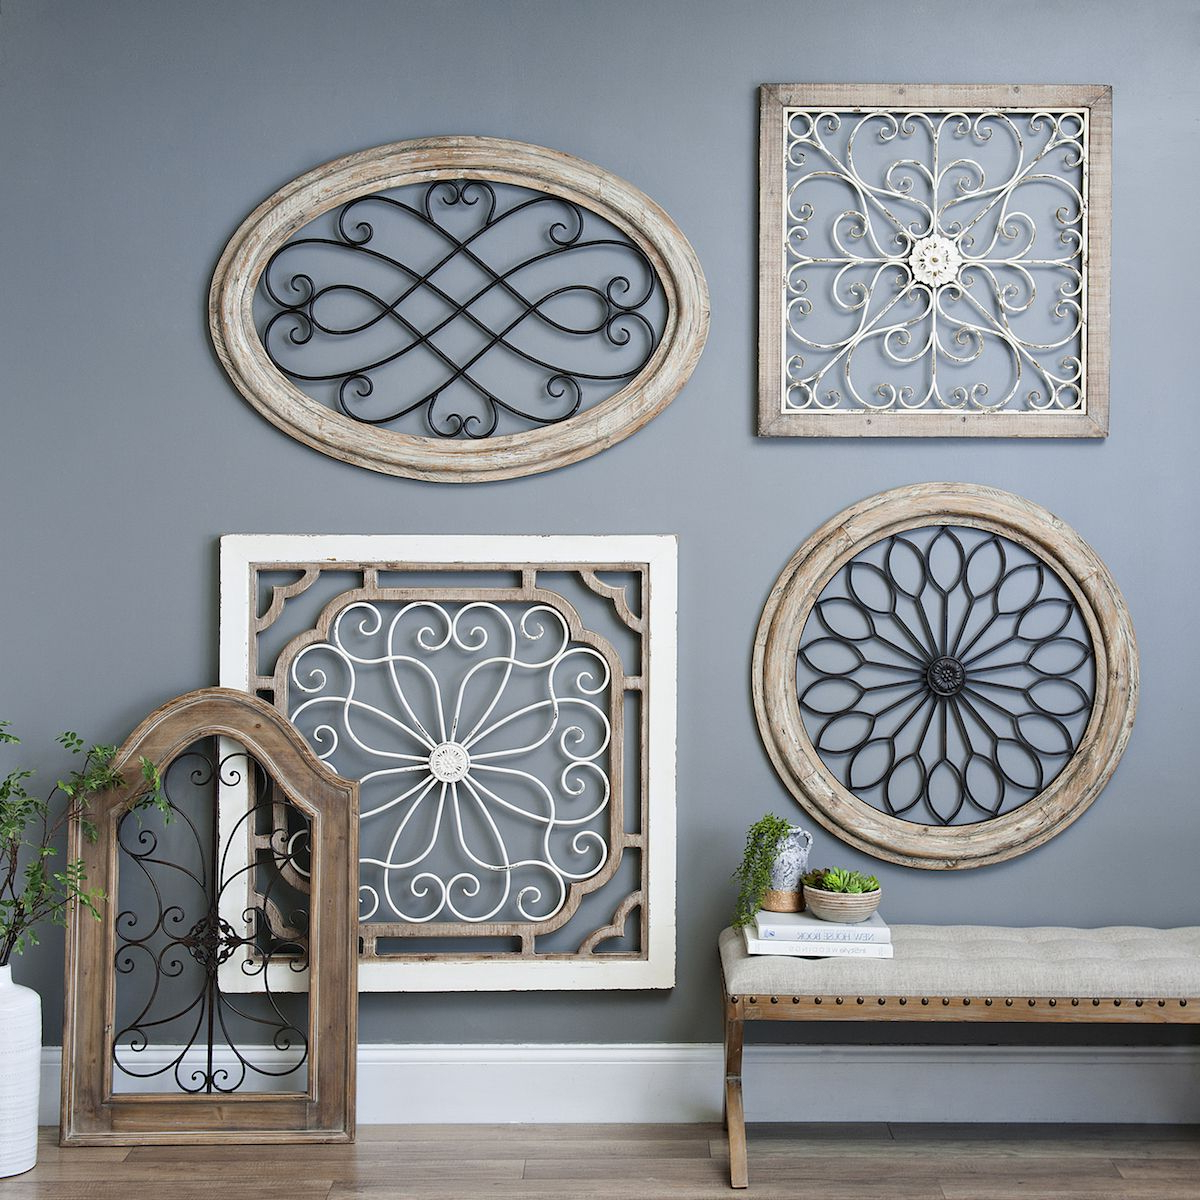 Home Throughout Favorite 1 Piece Ortie Panel Wall Decor (View 11 of 20)